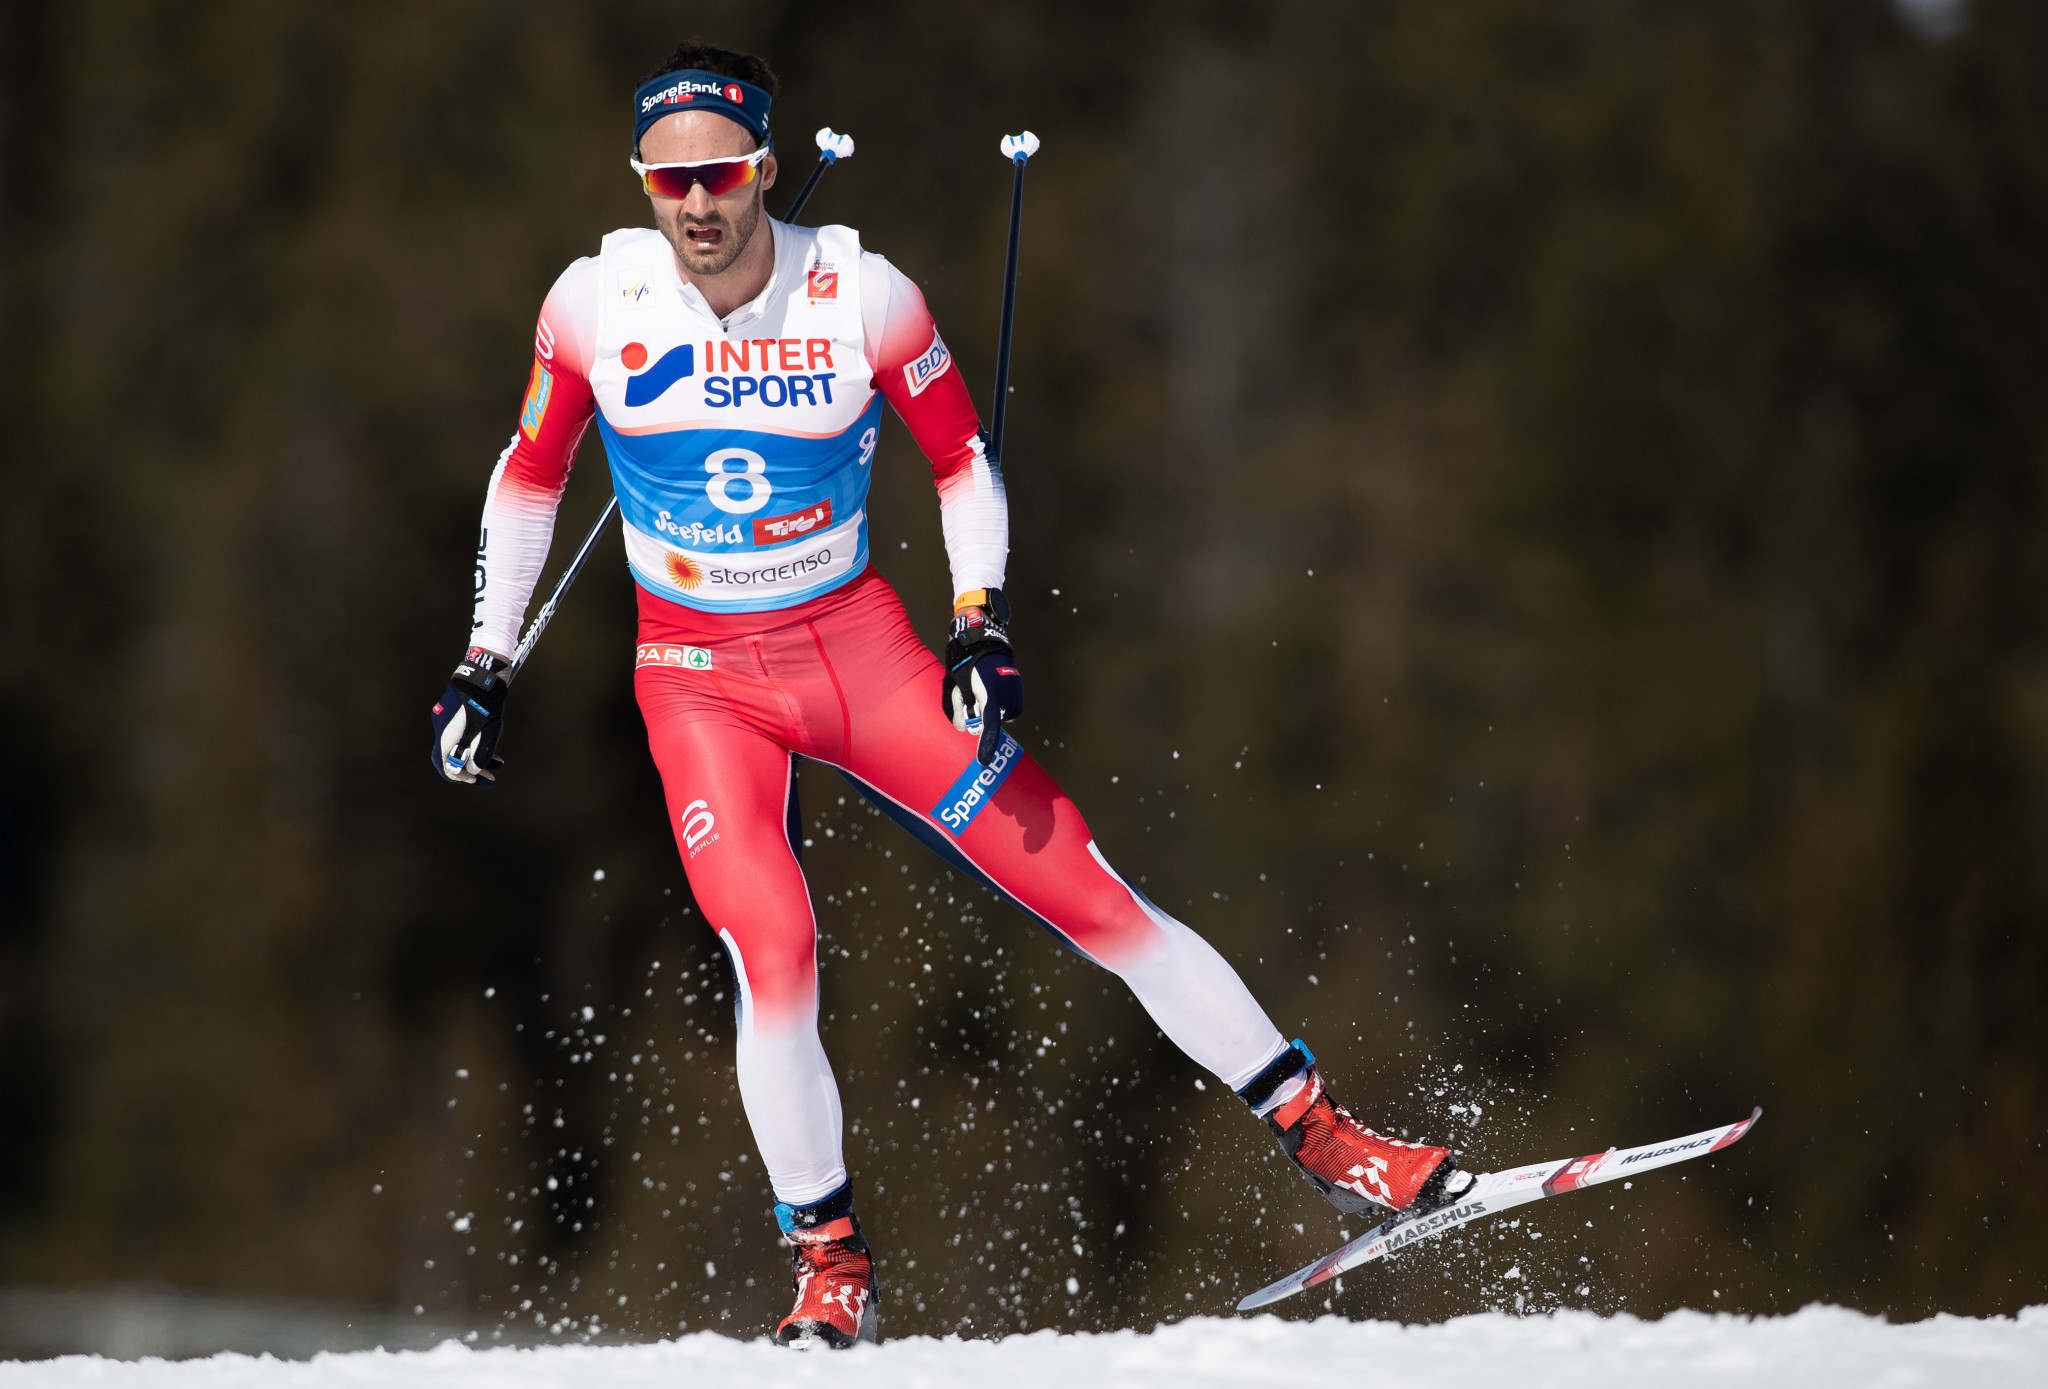 Holund completes cross-country clean sweep for Norwegian men as FIS Nordic World Ski Championships conclude